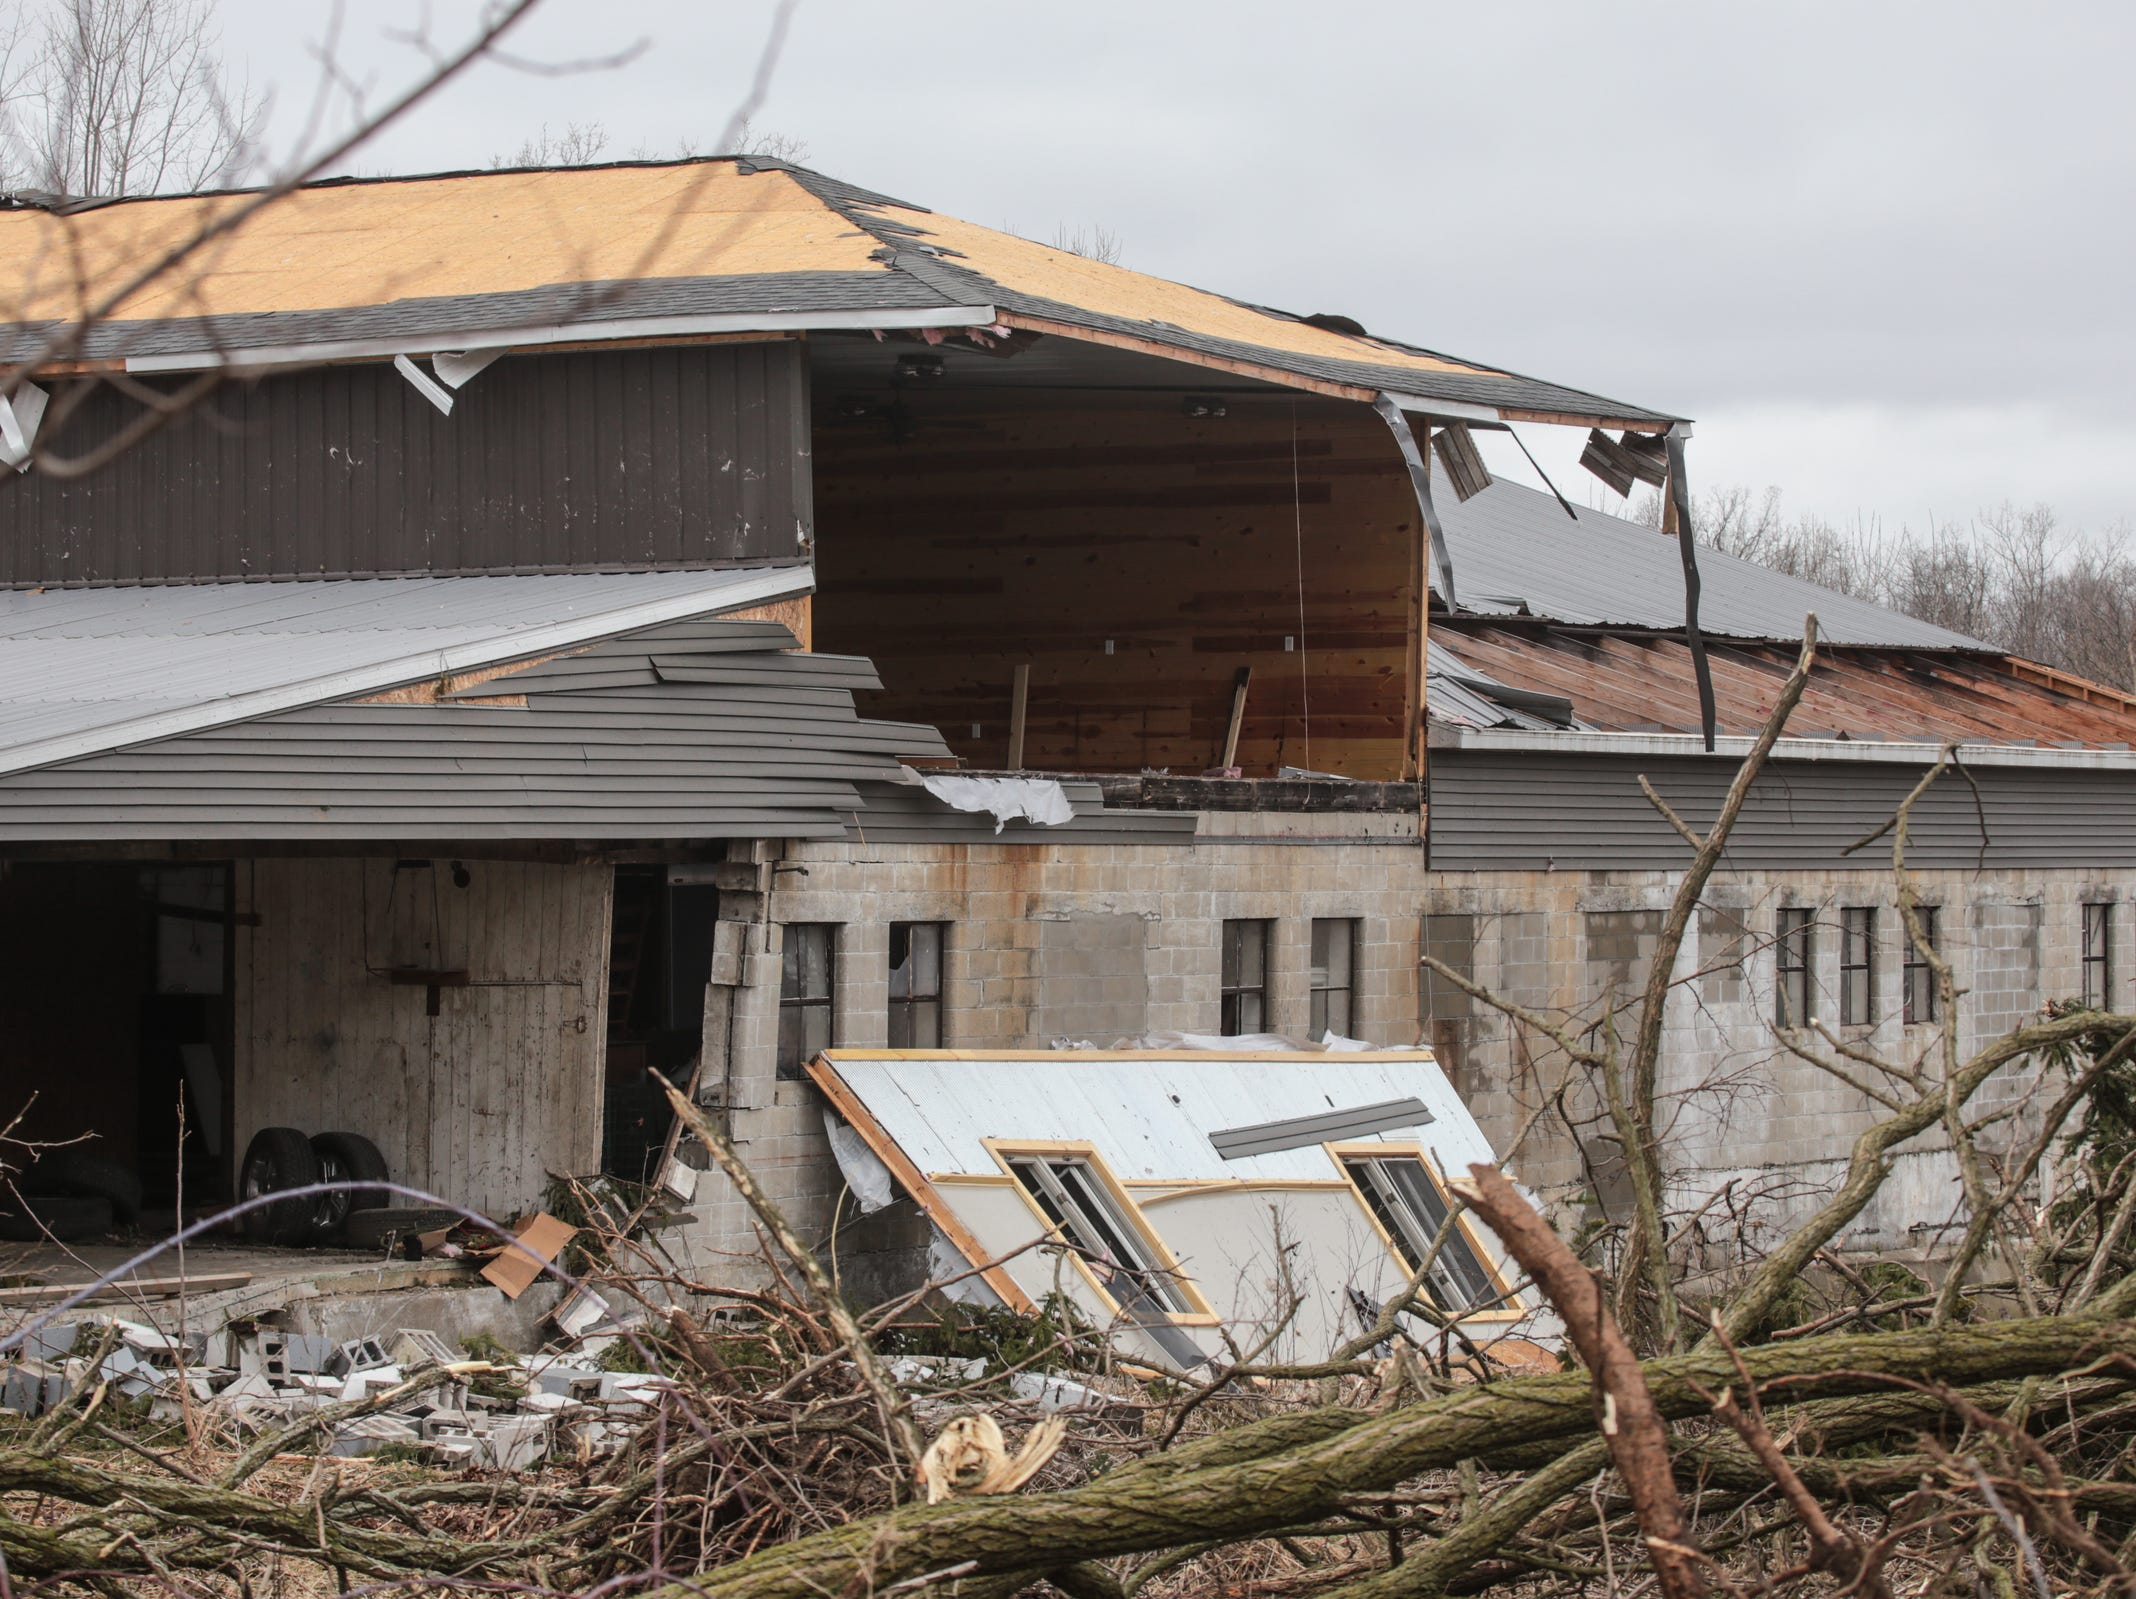 A structure shows damage from a tornado that came through Shiawassee County overnight on Newburg Rd.in Bancroft on Friday, March 15, 2019.